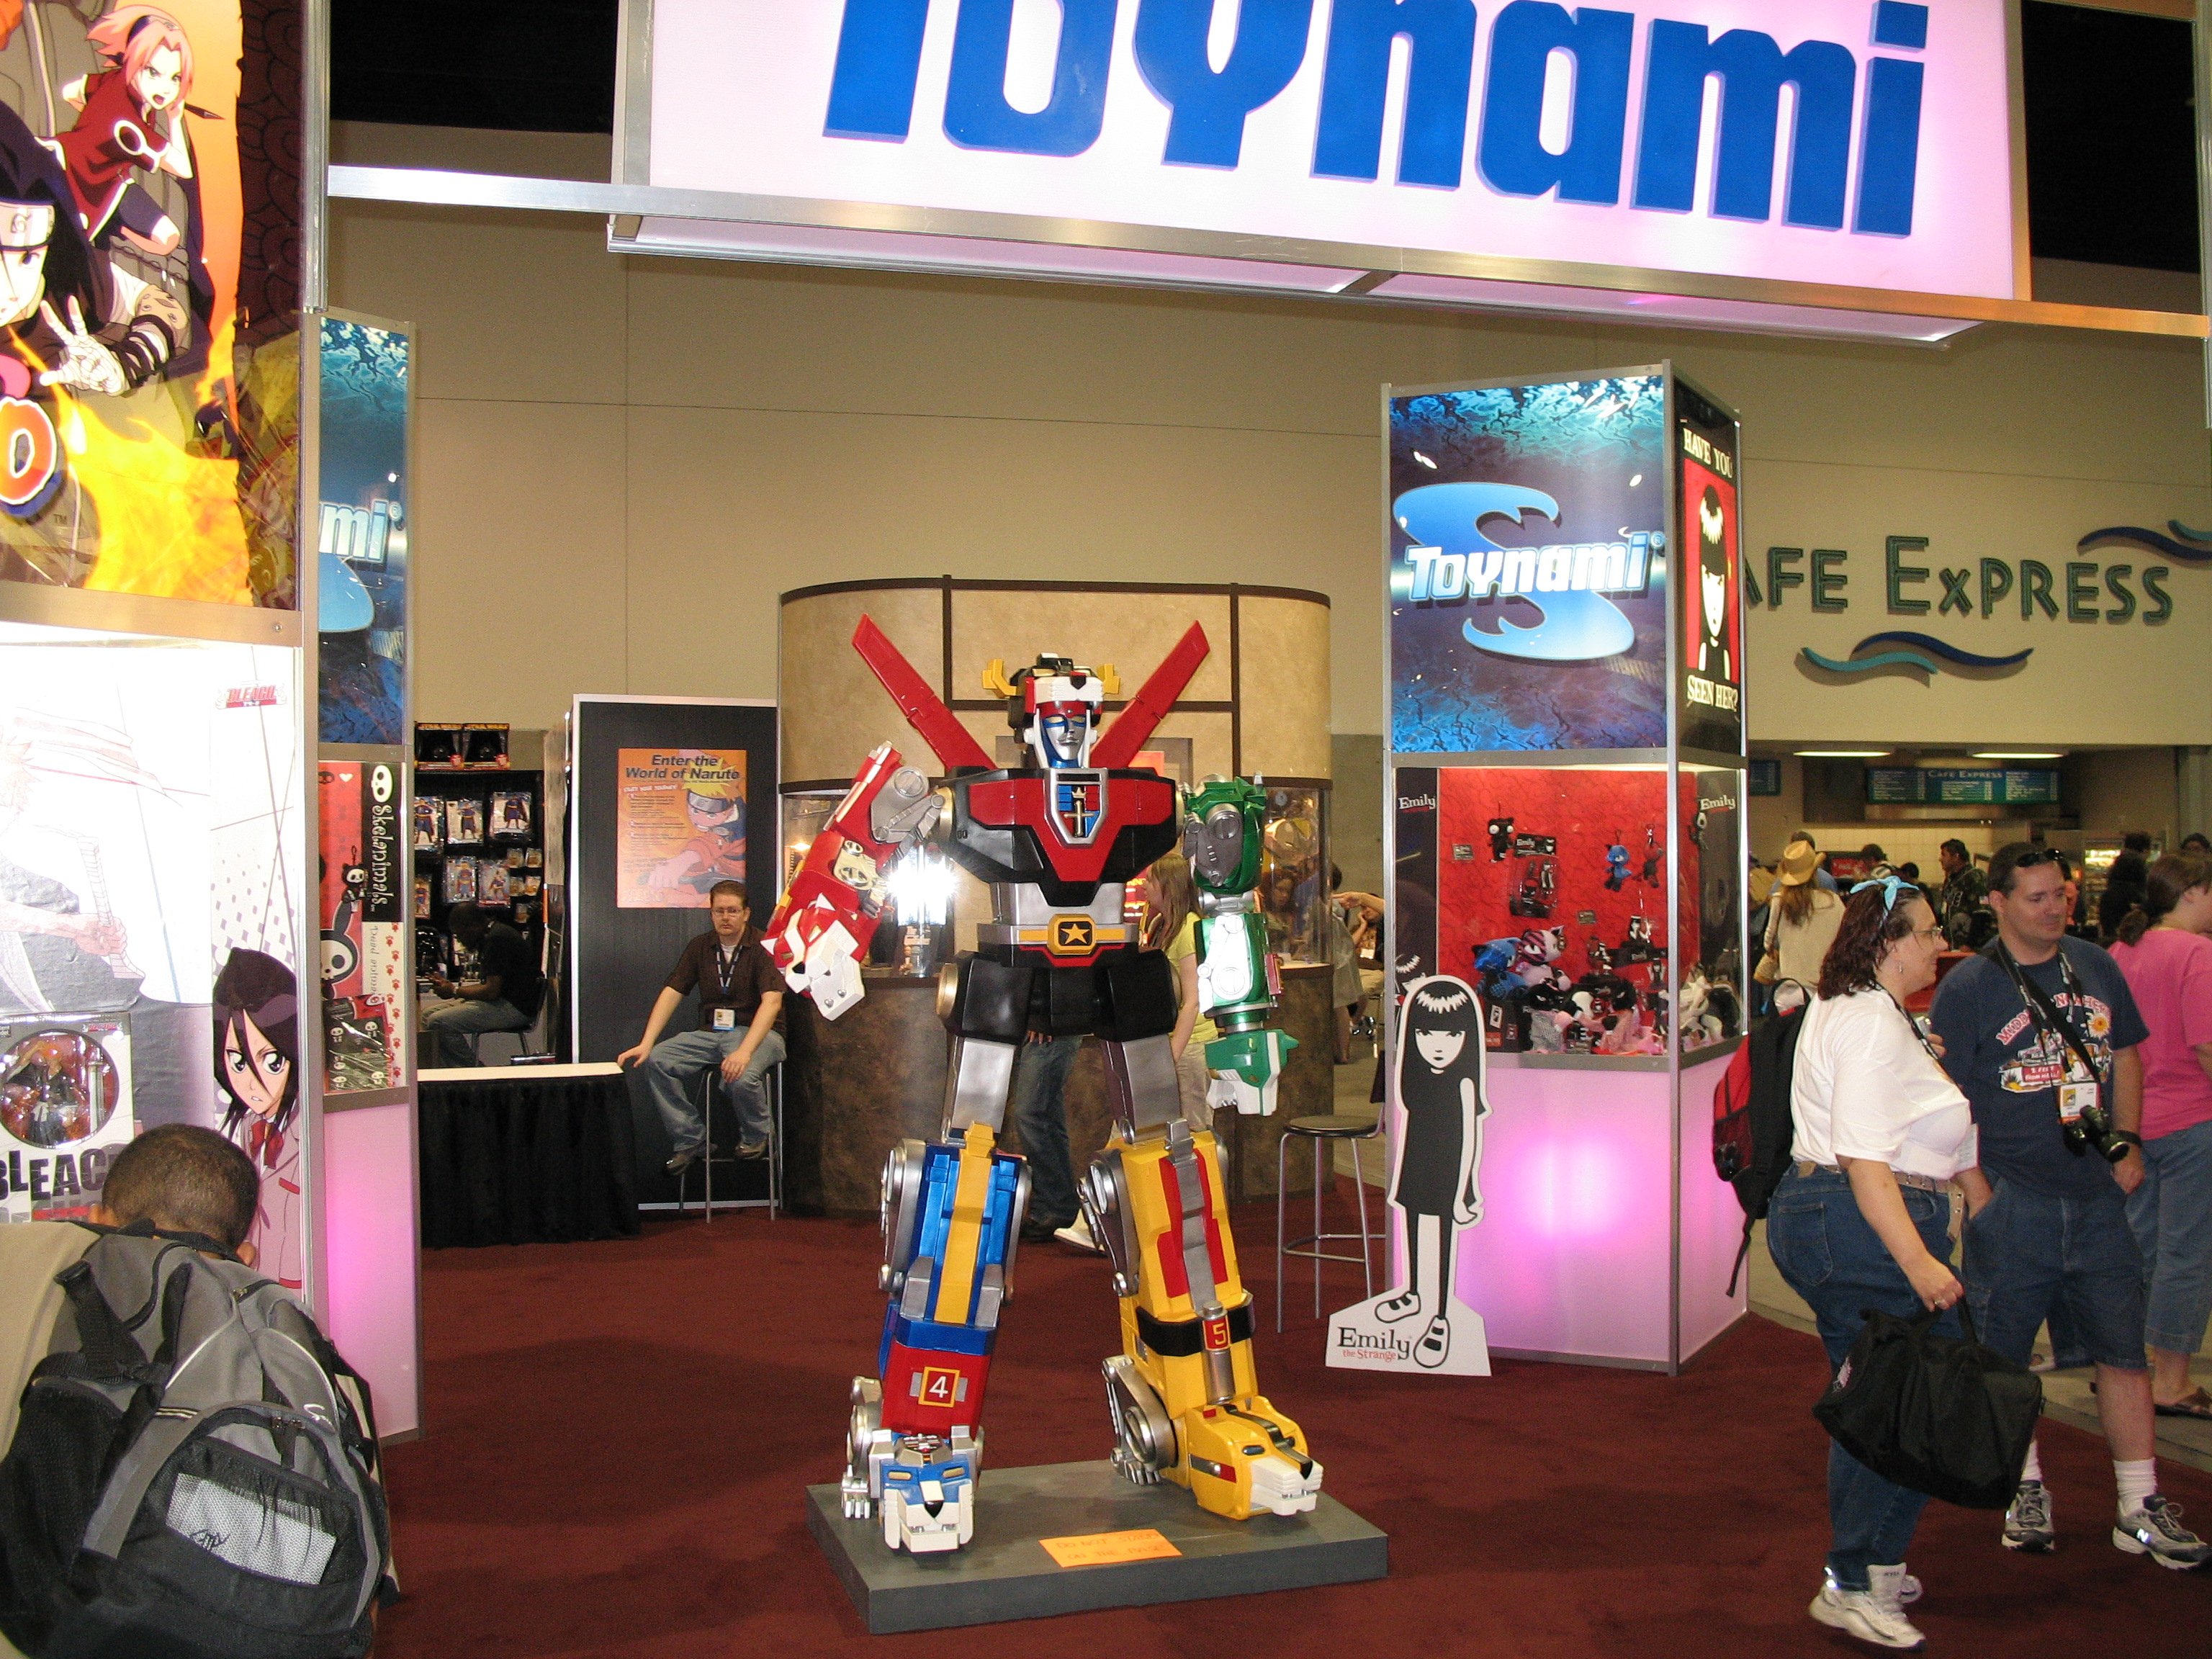 Voltron display at the Toynami booth